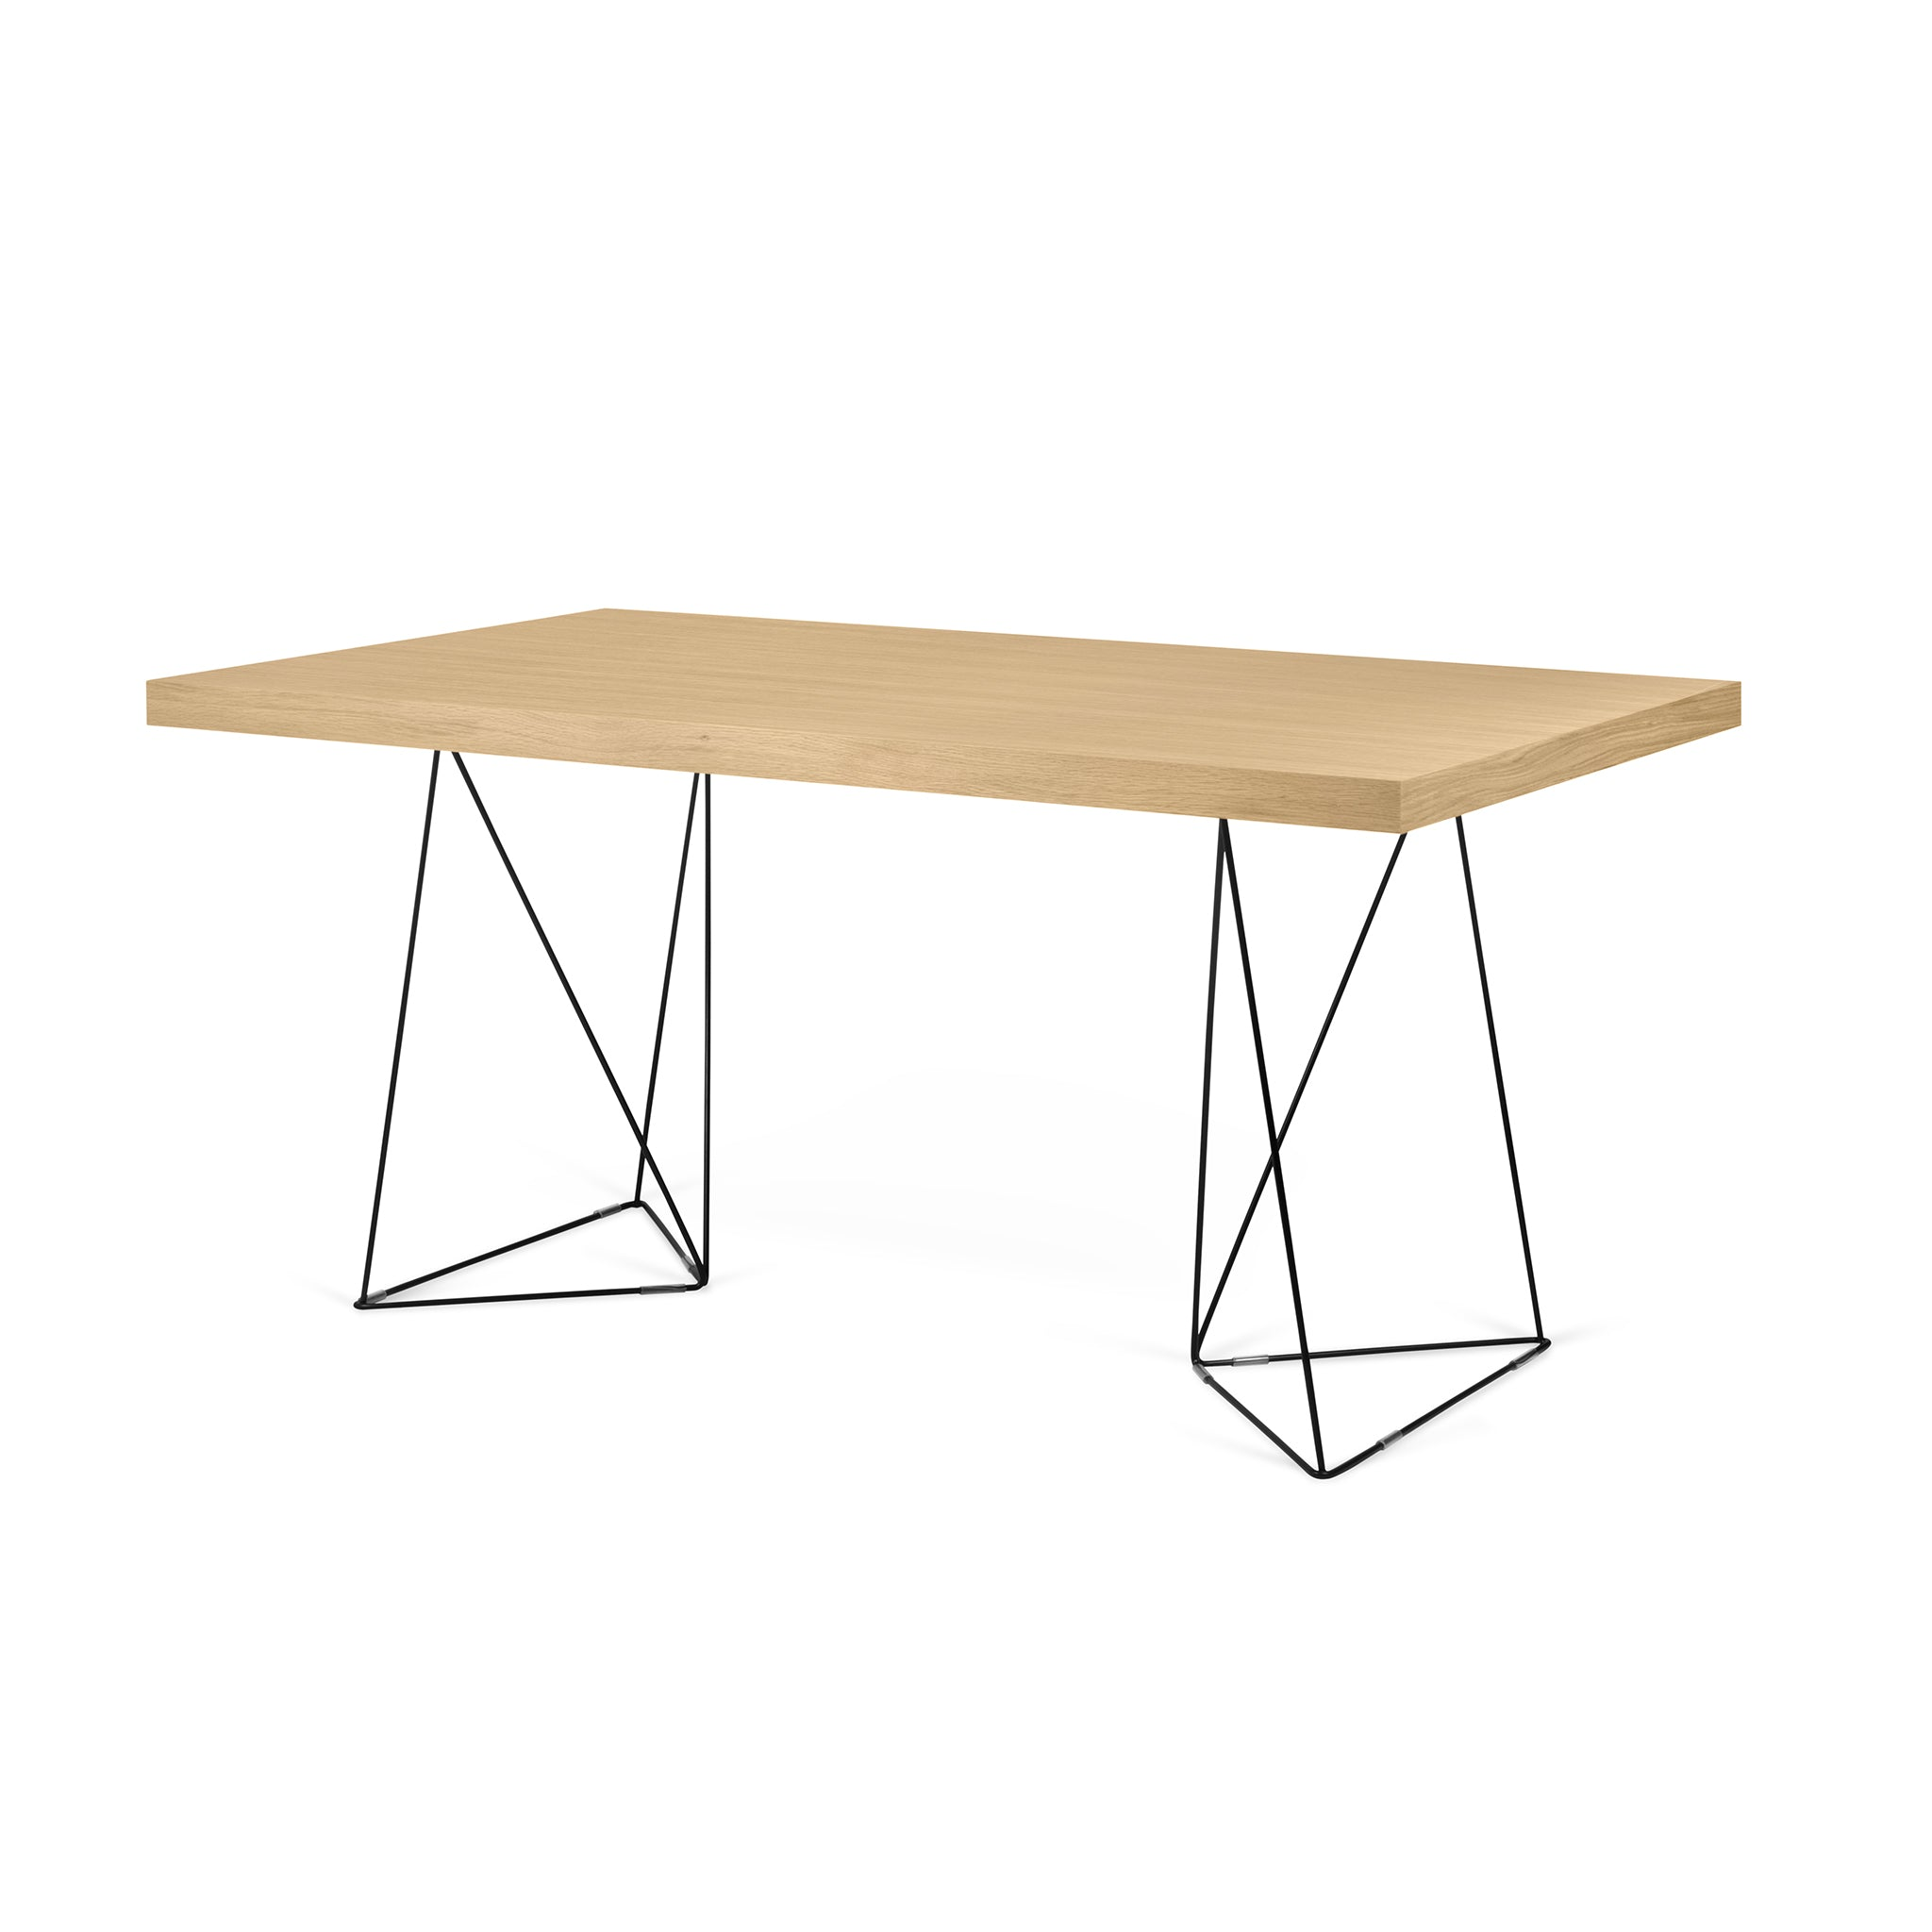 Multi 71 Table with Black Trestle Legs